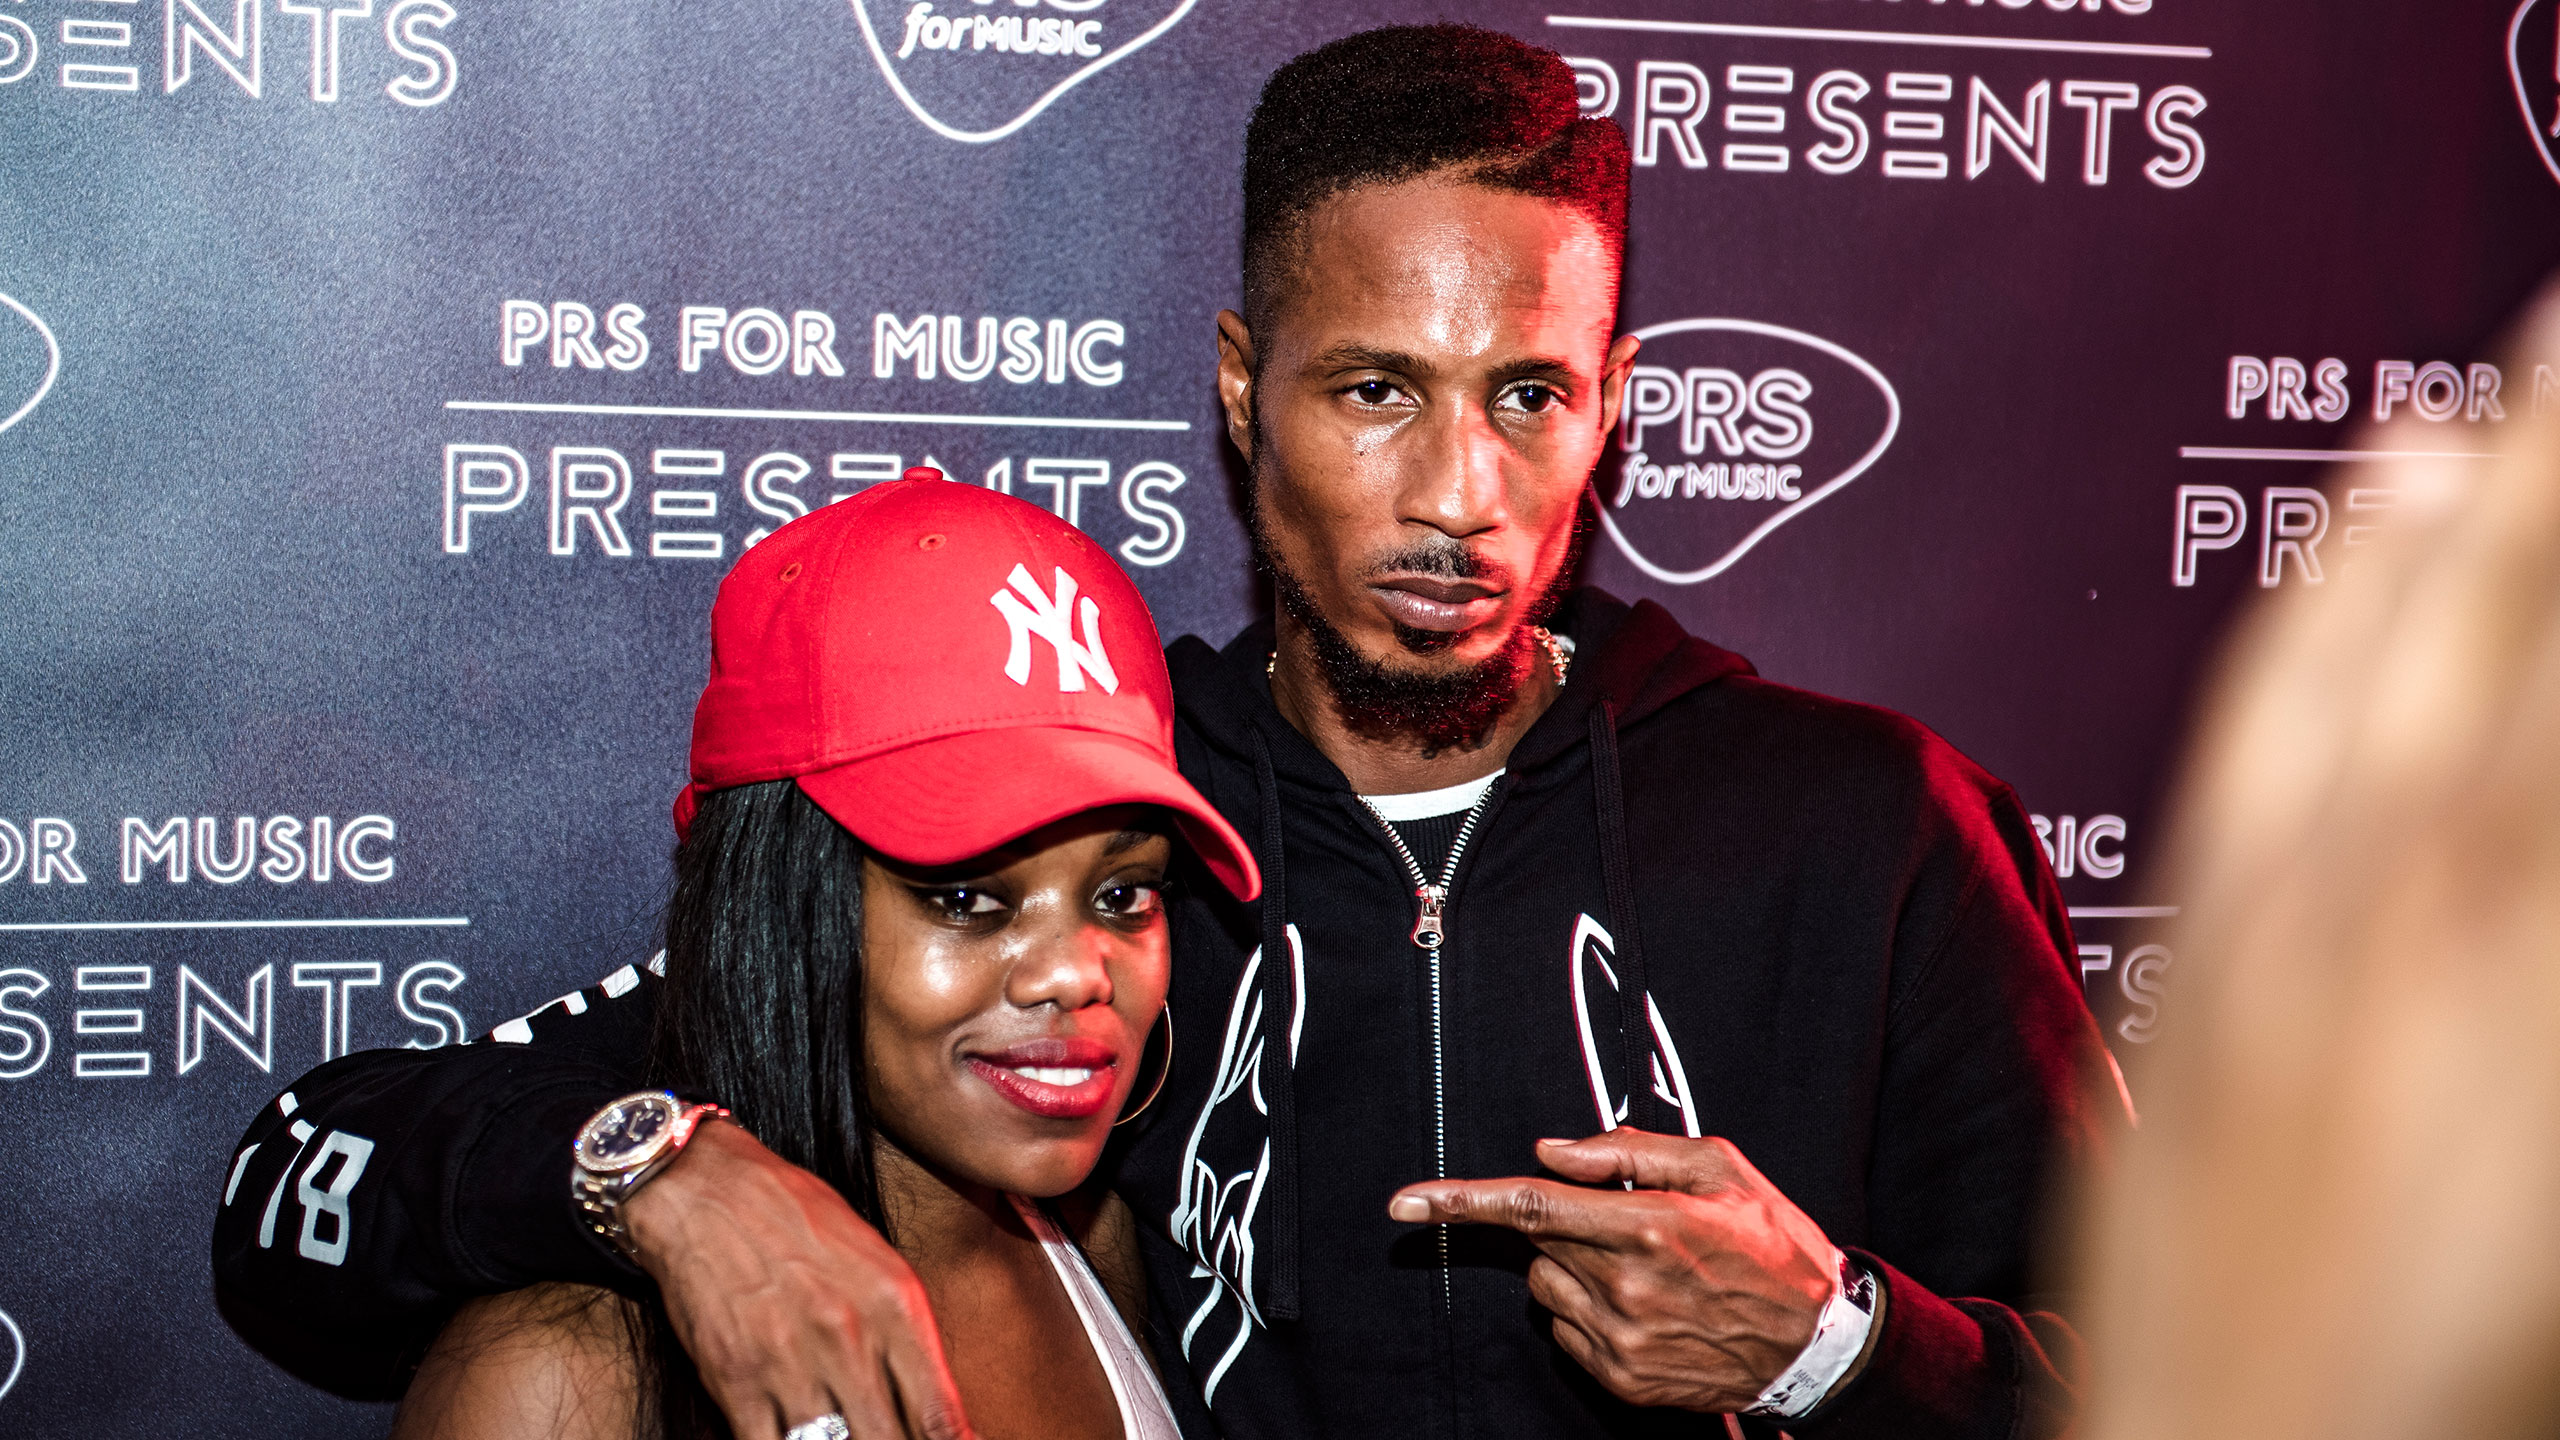 Lady Leshurr and D Double E at PRS for Music Presents